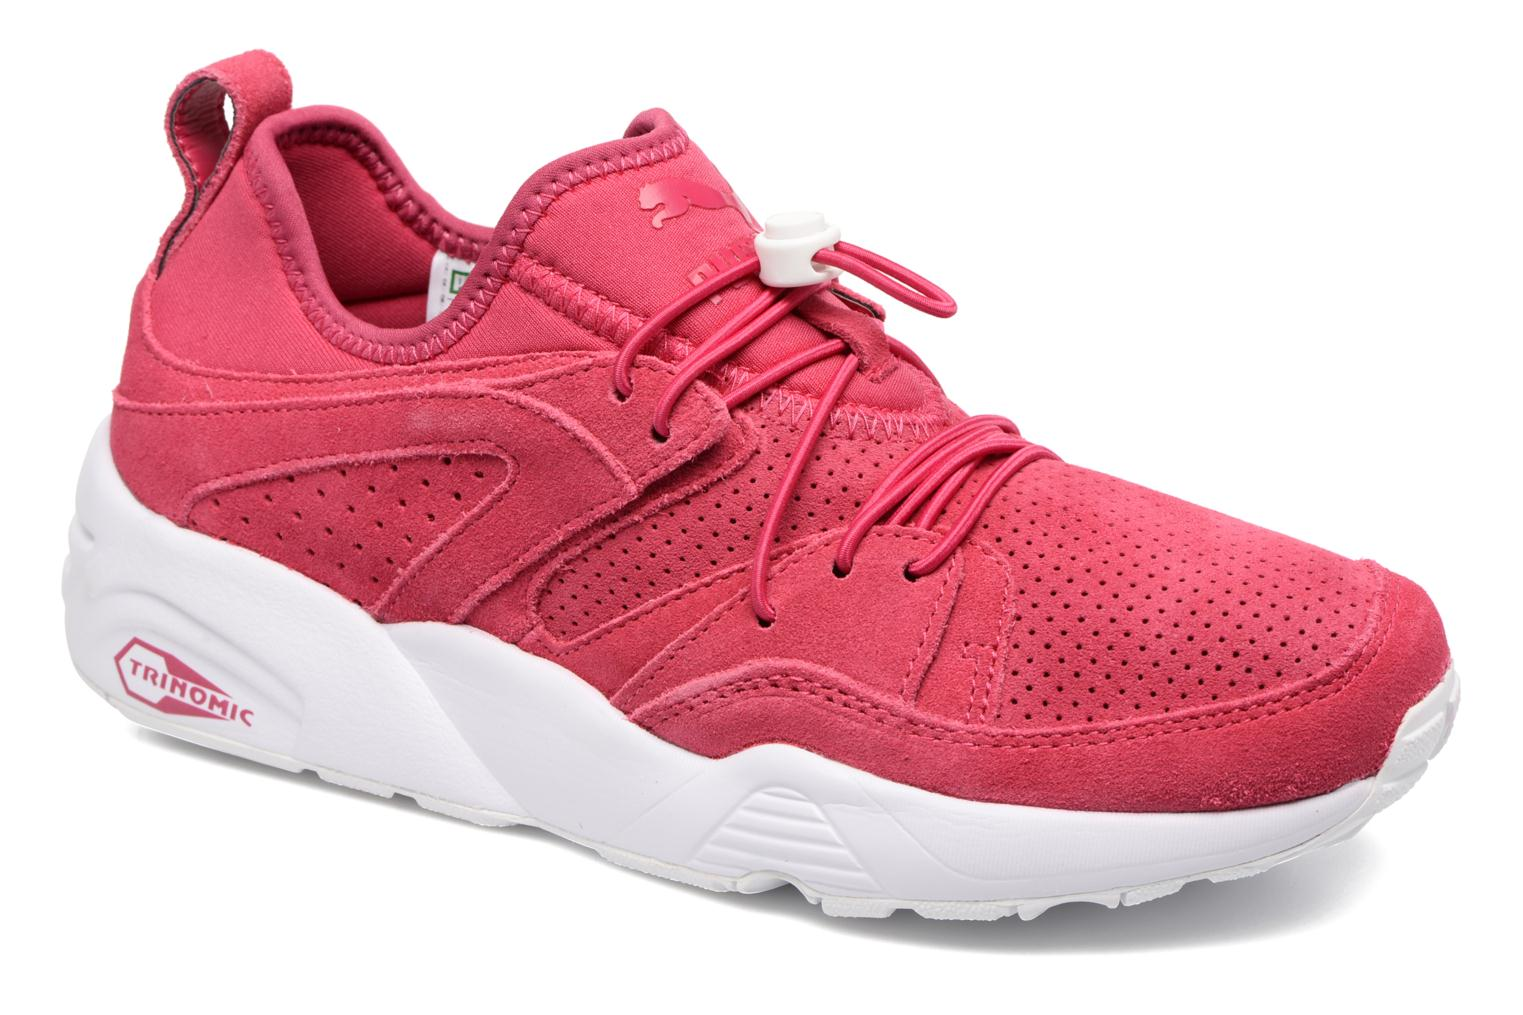 Puma Wn's Vivacious Glory SOFT of Blaze zqwAUY